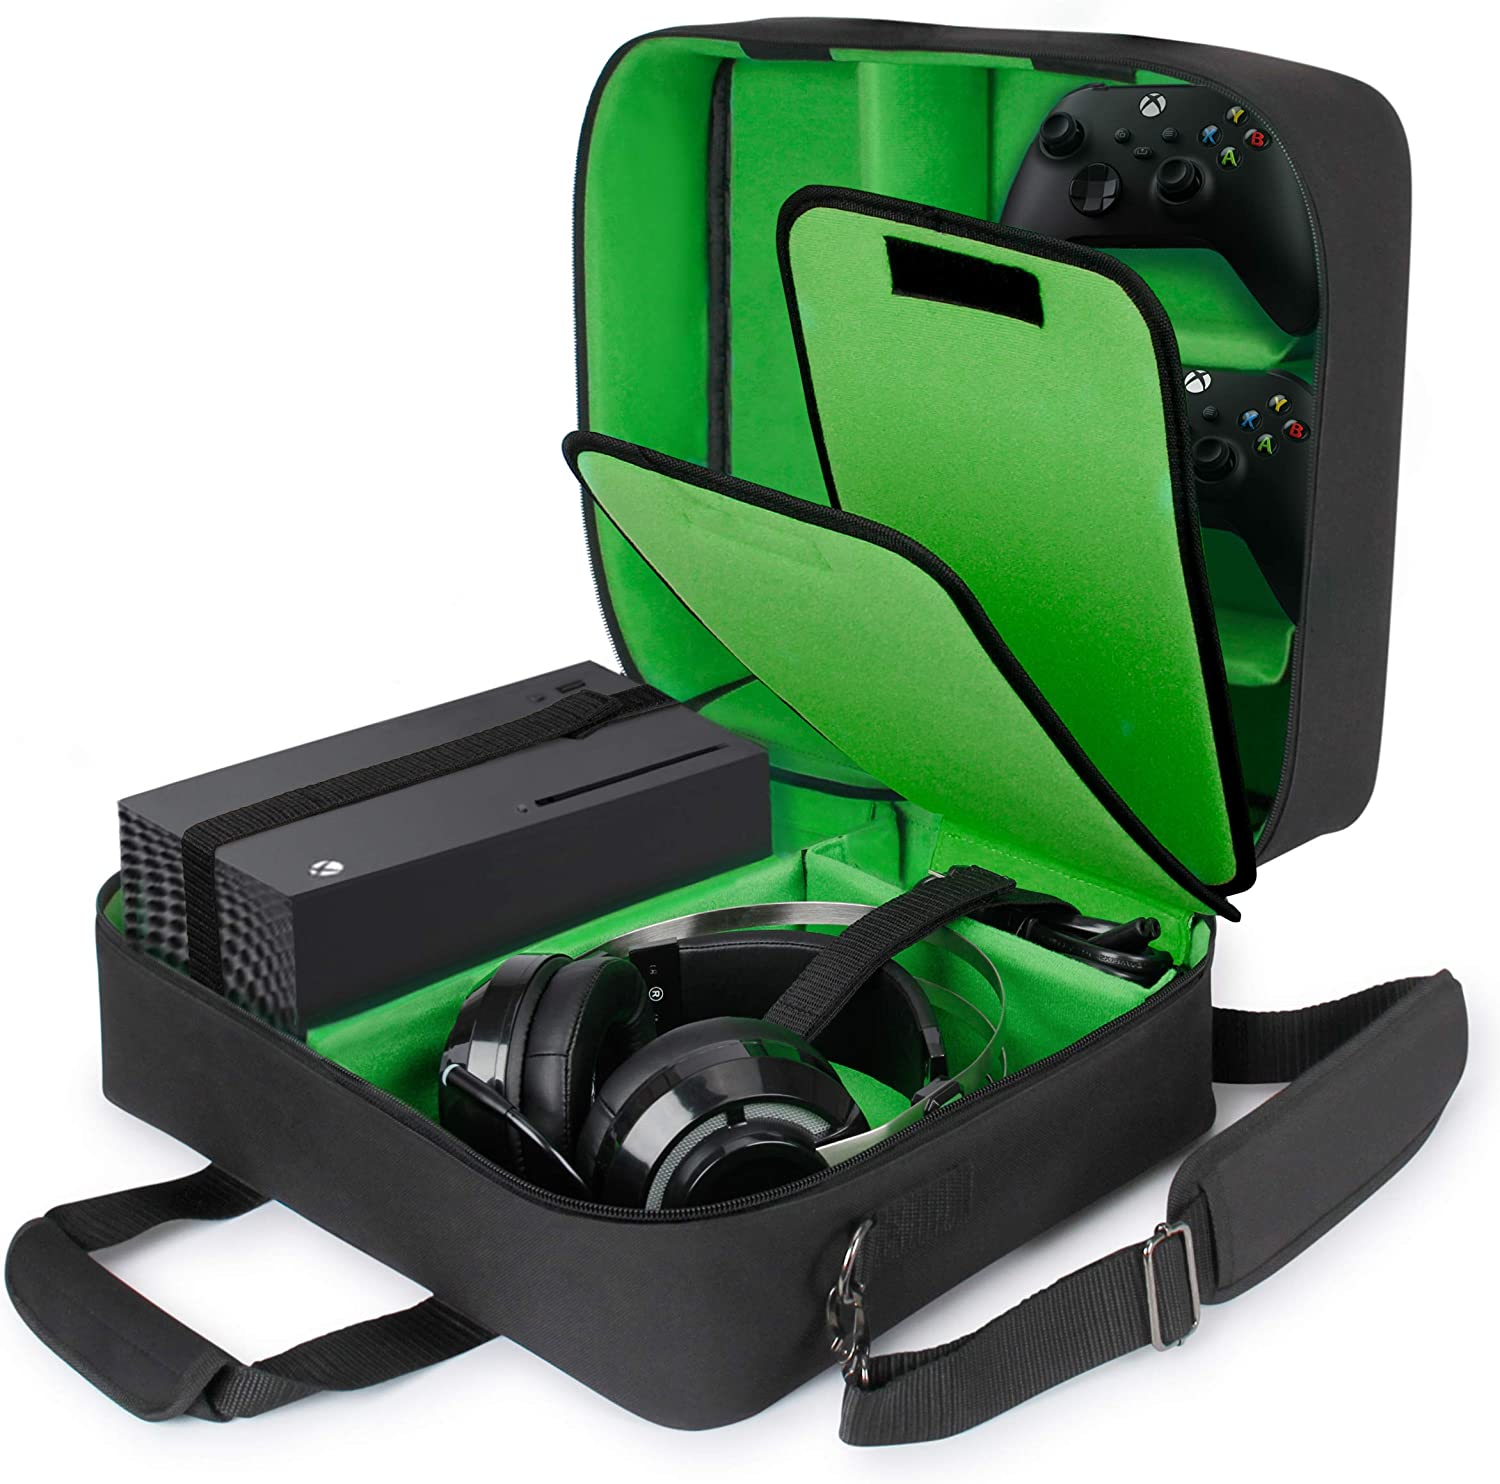 4. Best XBox Series X Bag: USA Gear Xbox Case